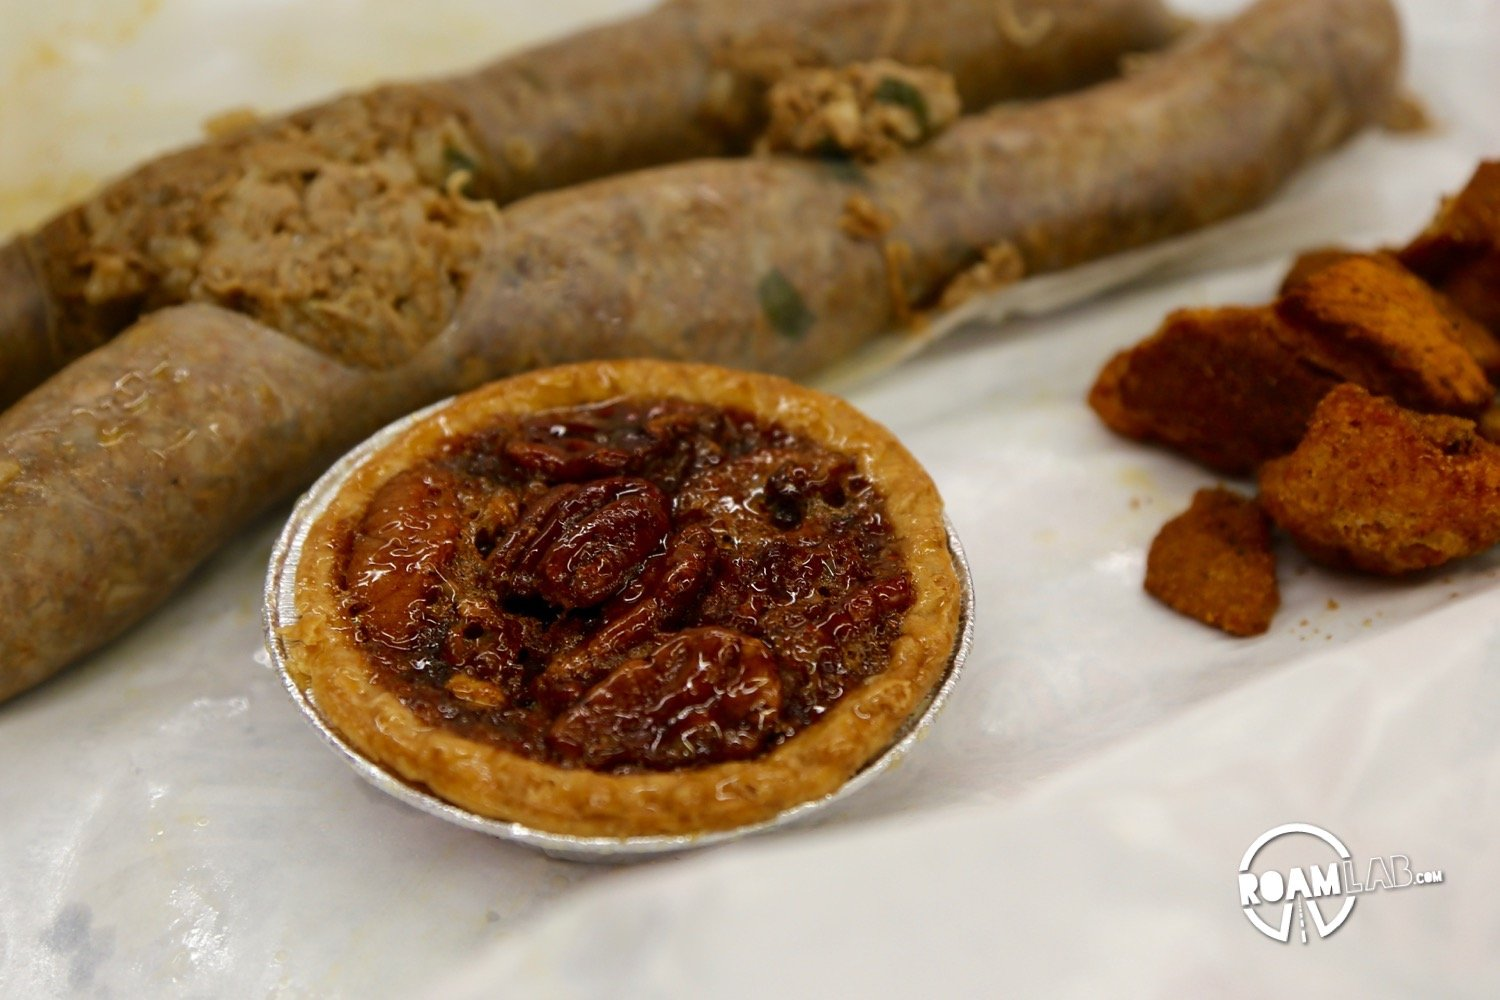 It was late and we hadn't eaten when we filled up our tank in a town boasting of their boudin and cracklings. We shrugged our shoulders. Might as well try it.